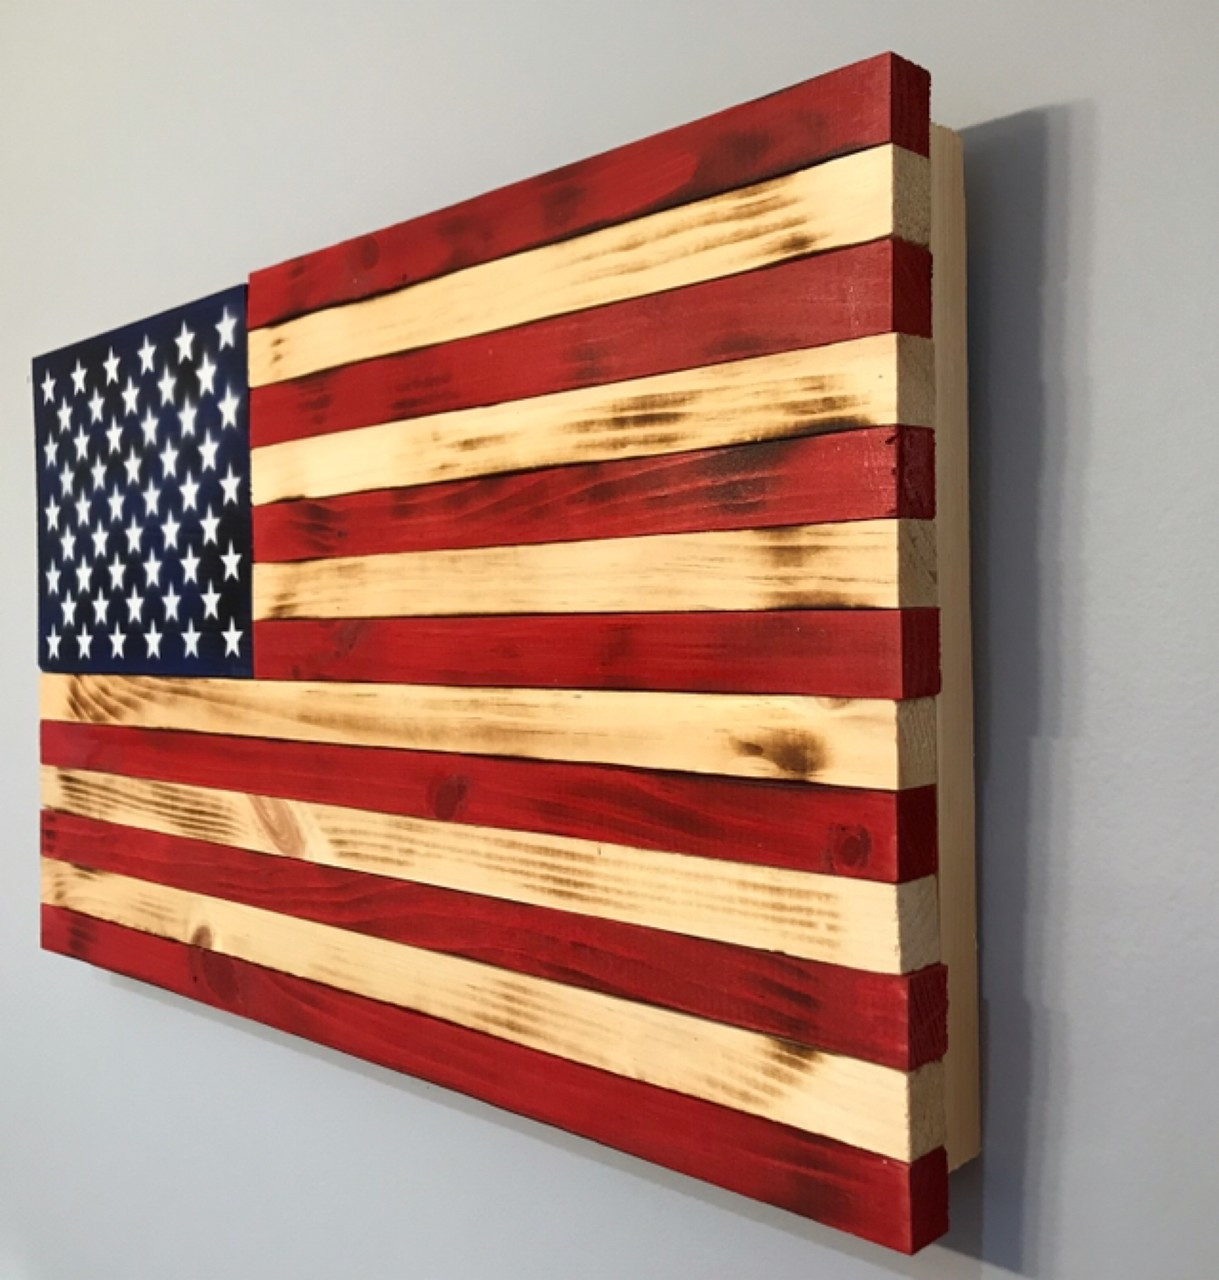 Wooden American Flag Painted Stars On Union 24 X 13 Inches Americana Home Office Decor Patriotic Wall Hanging For Indooroutdoor